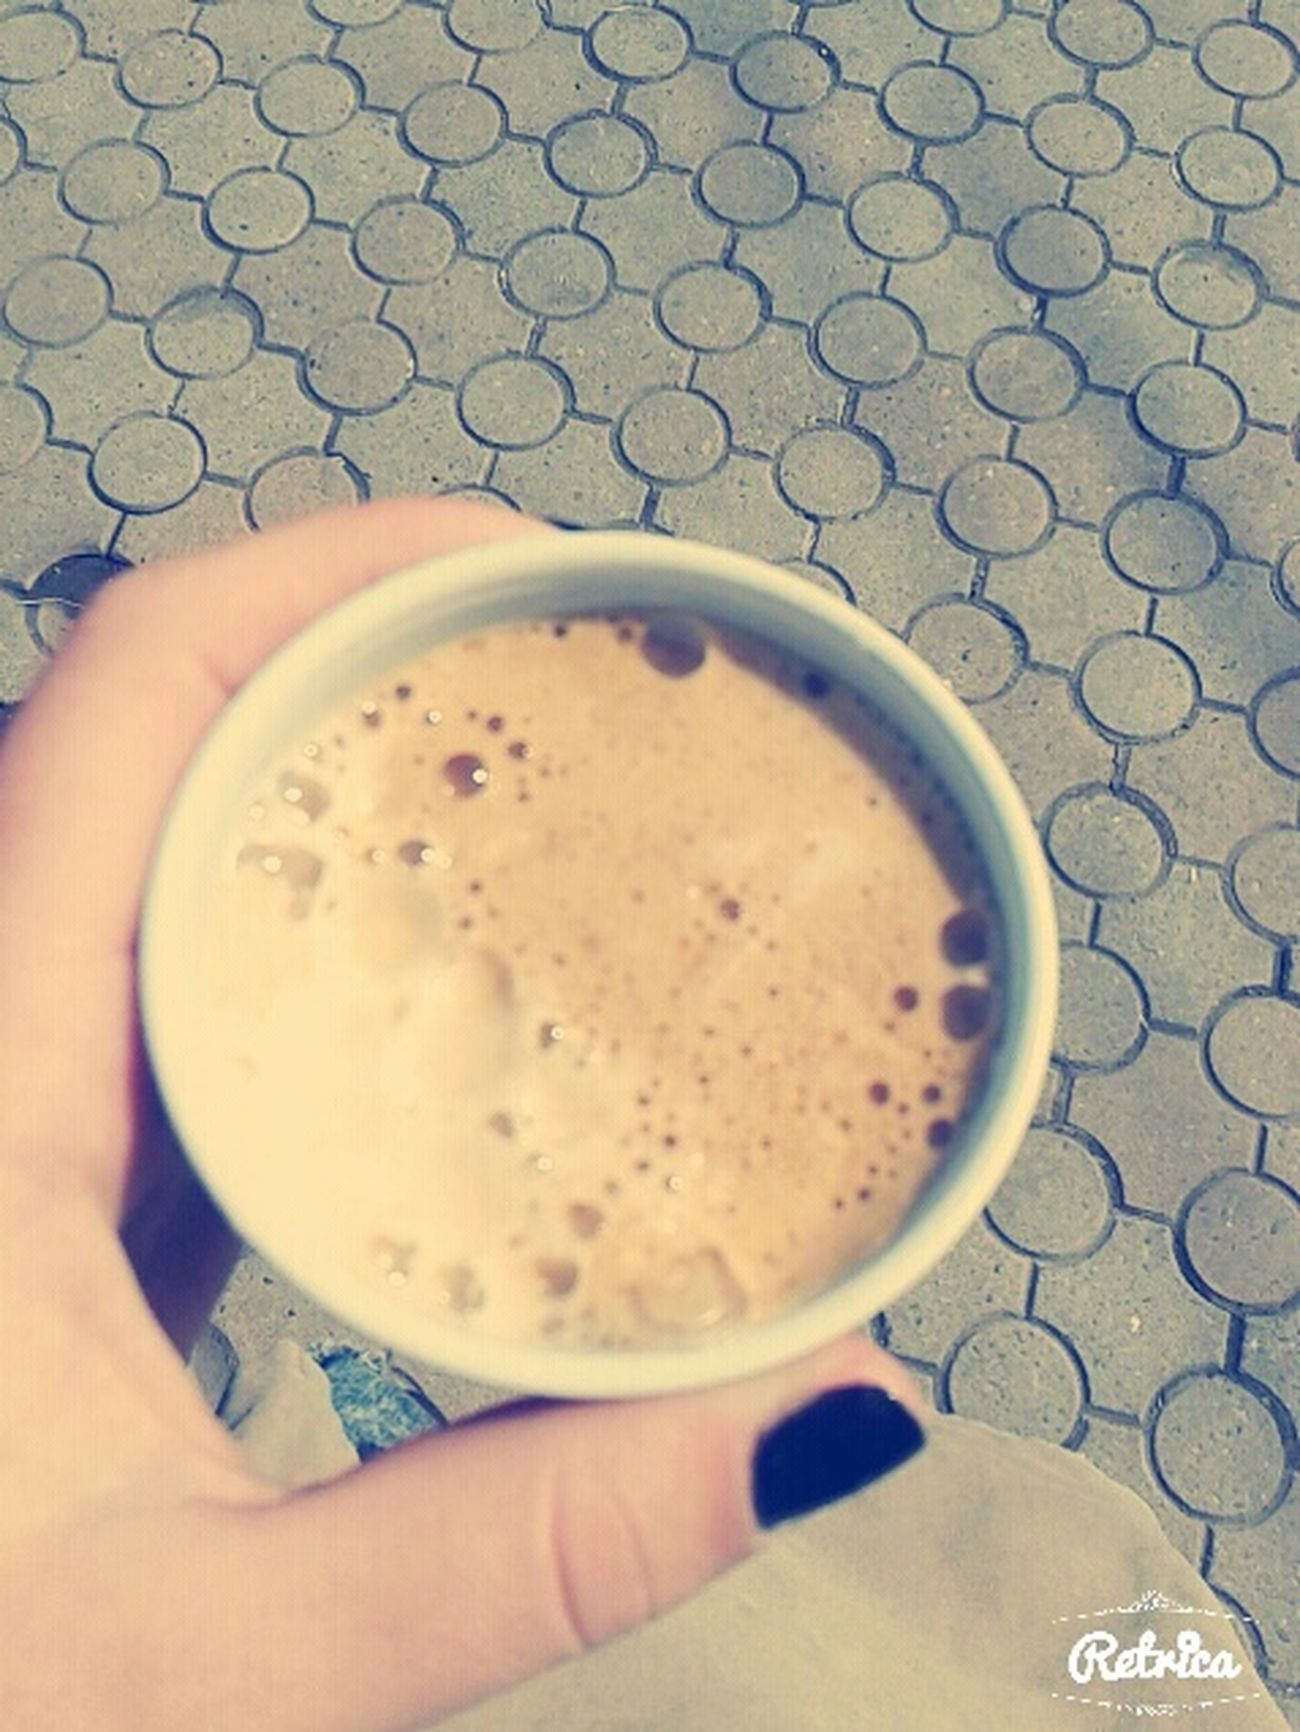 Getoutside Drinking Coffee ☕ Espresso❤ Thats Me ♥ Myhand Hotcoffee Feeling Good √